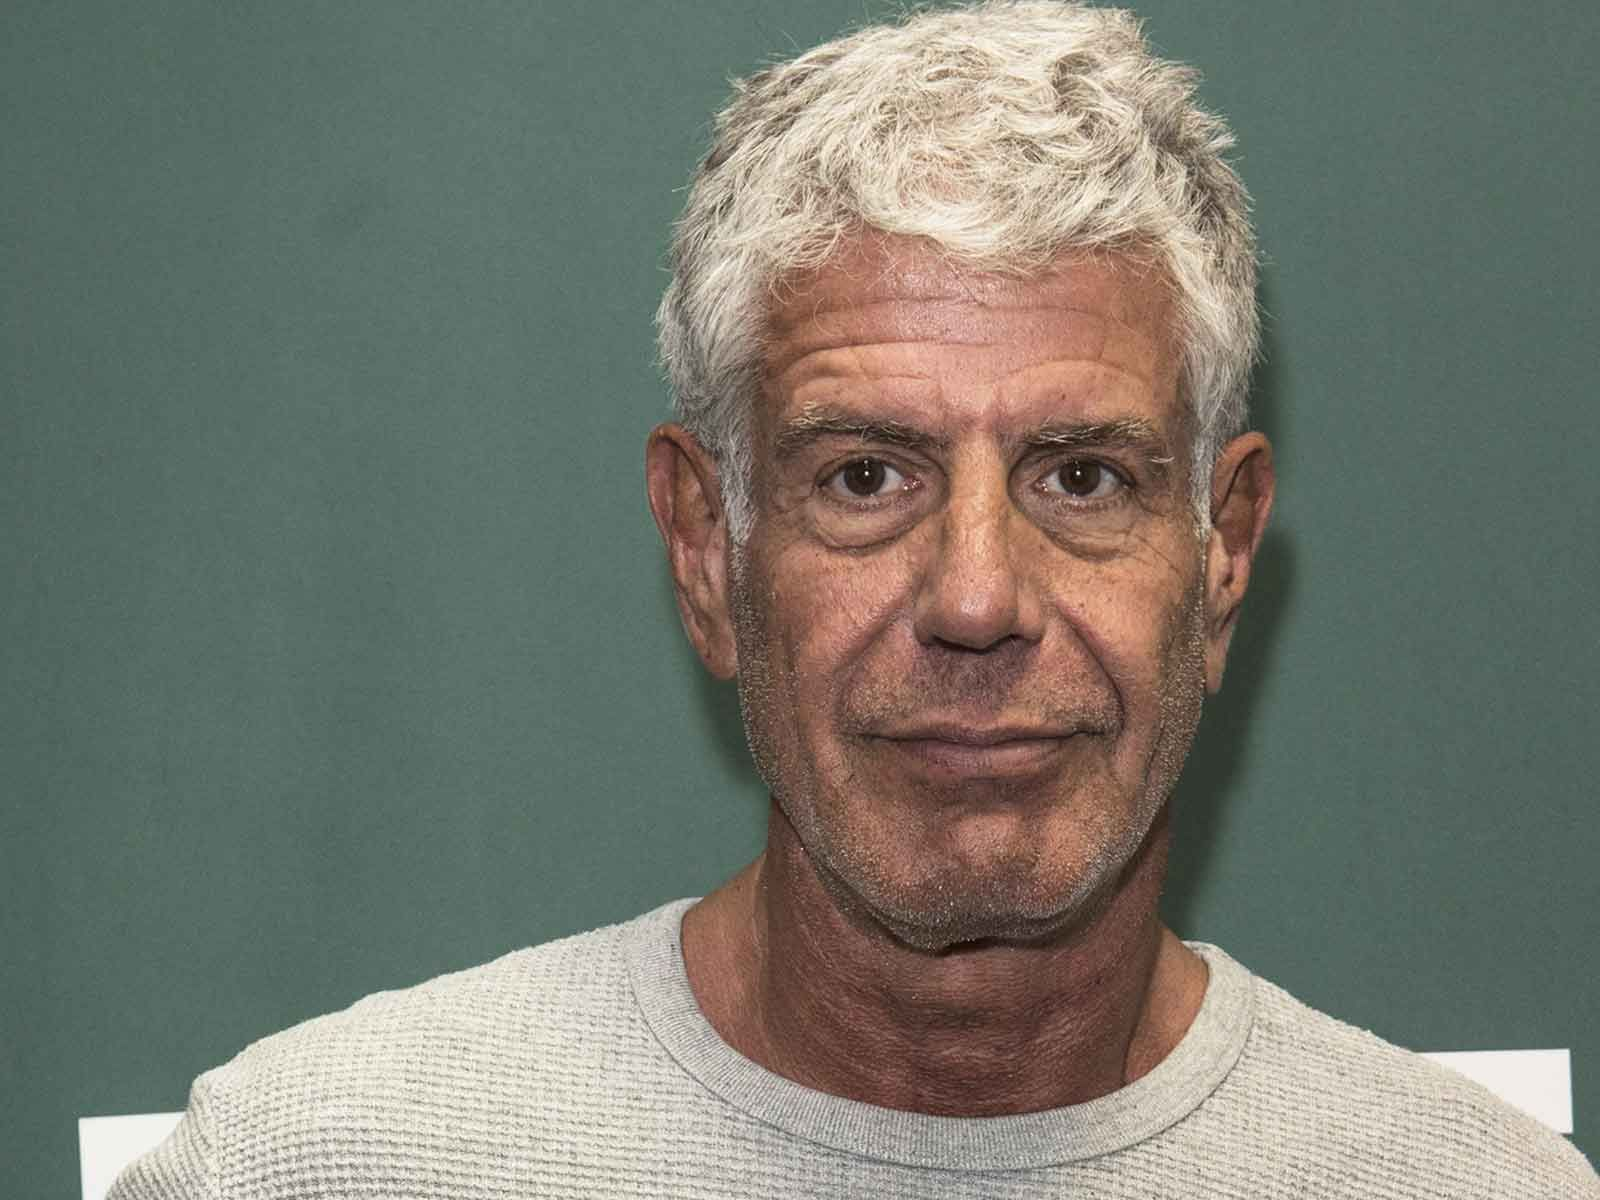 Anthony Bourdain Worth Just Over a Million Dollars at the